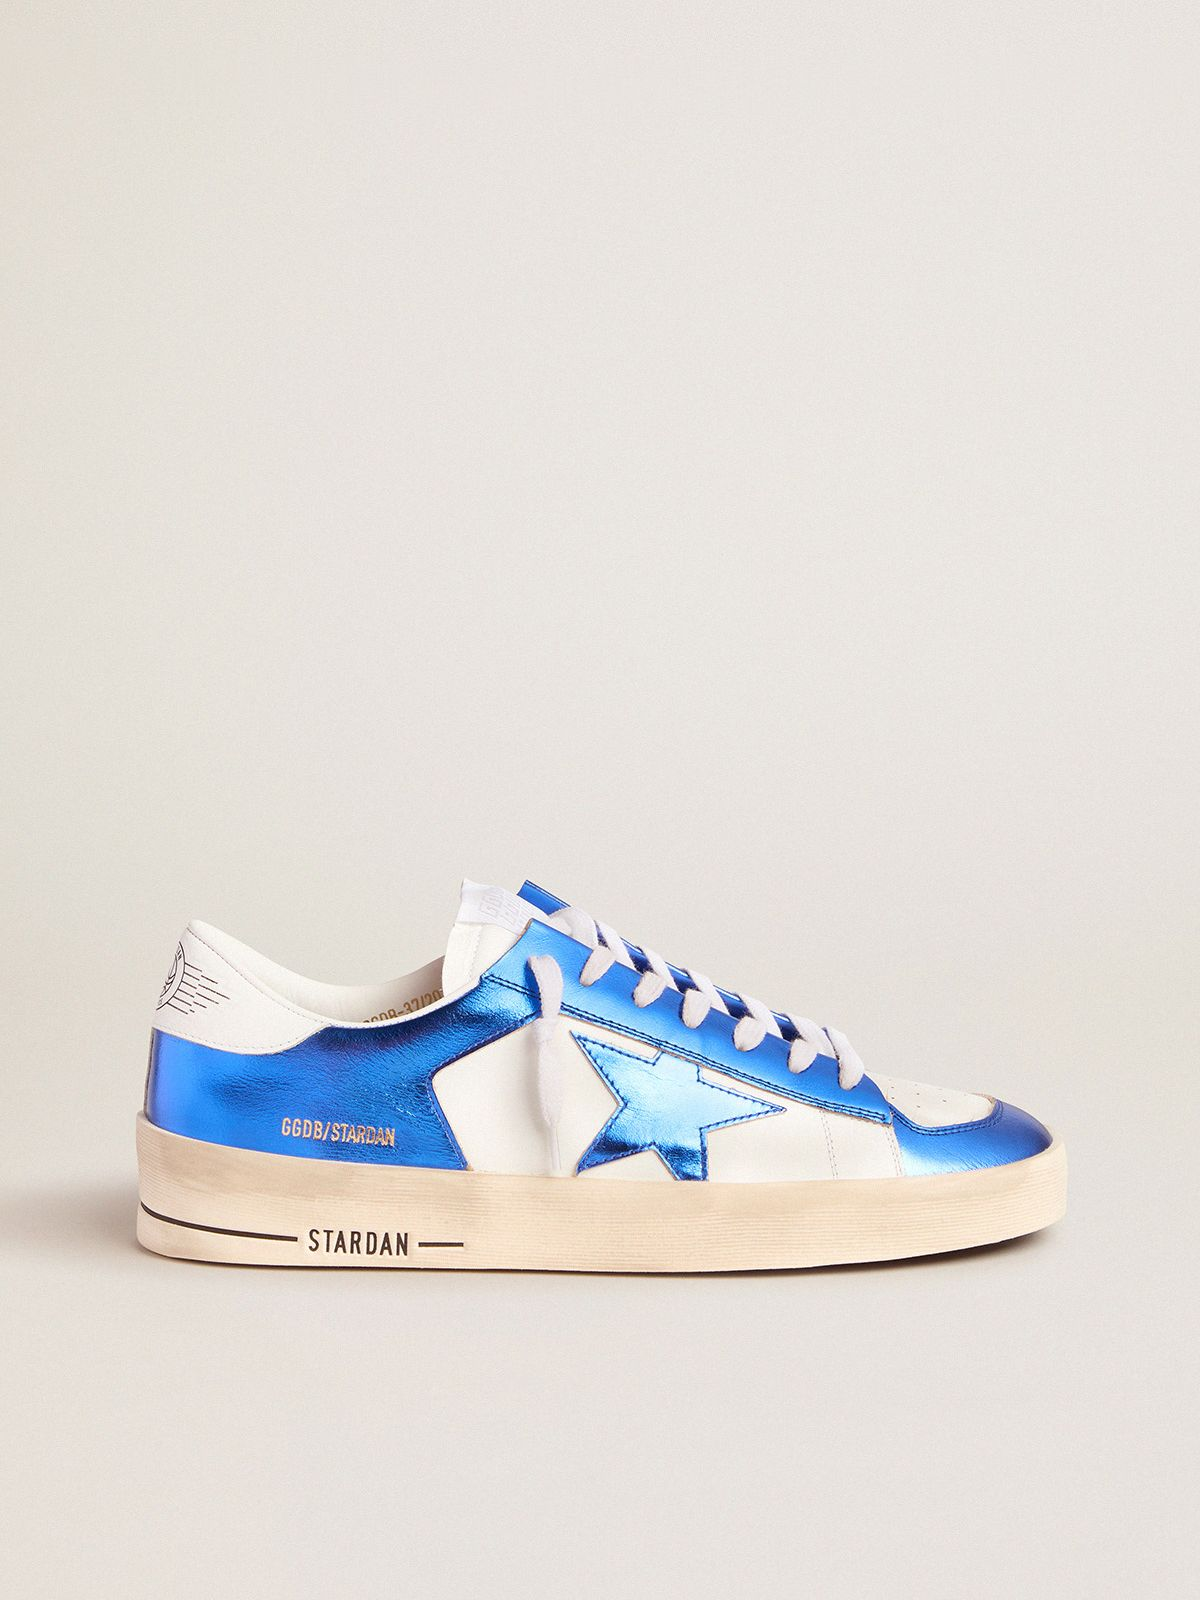 Blue and white Stardan sneakers